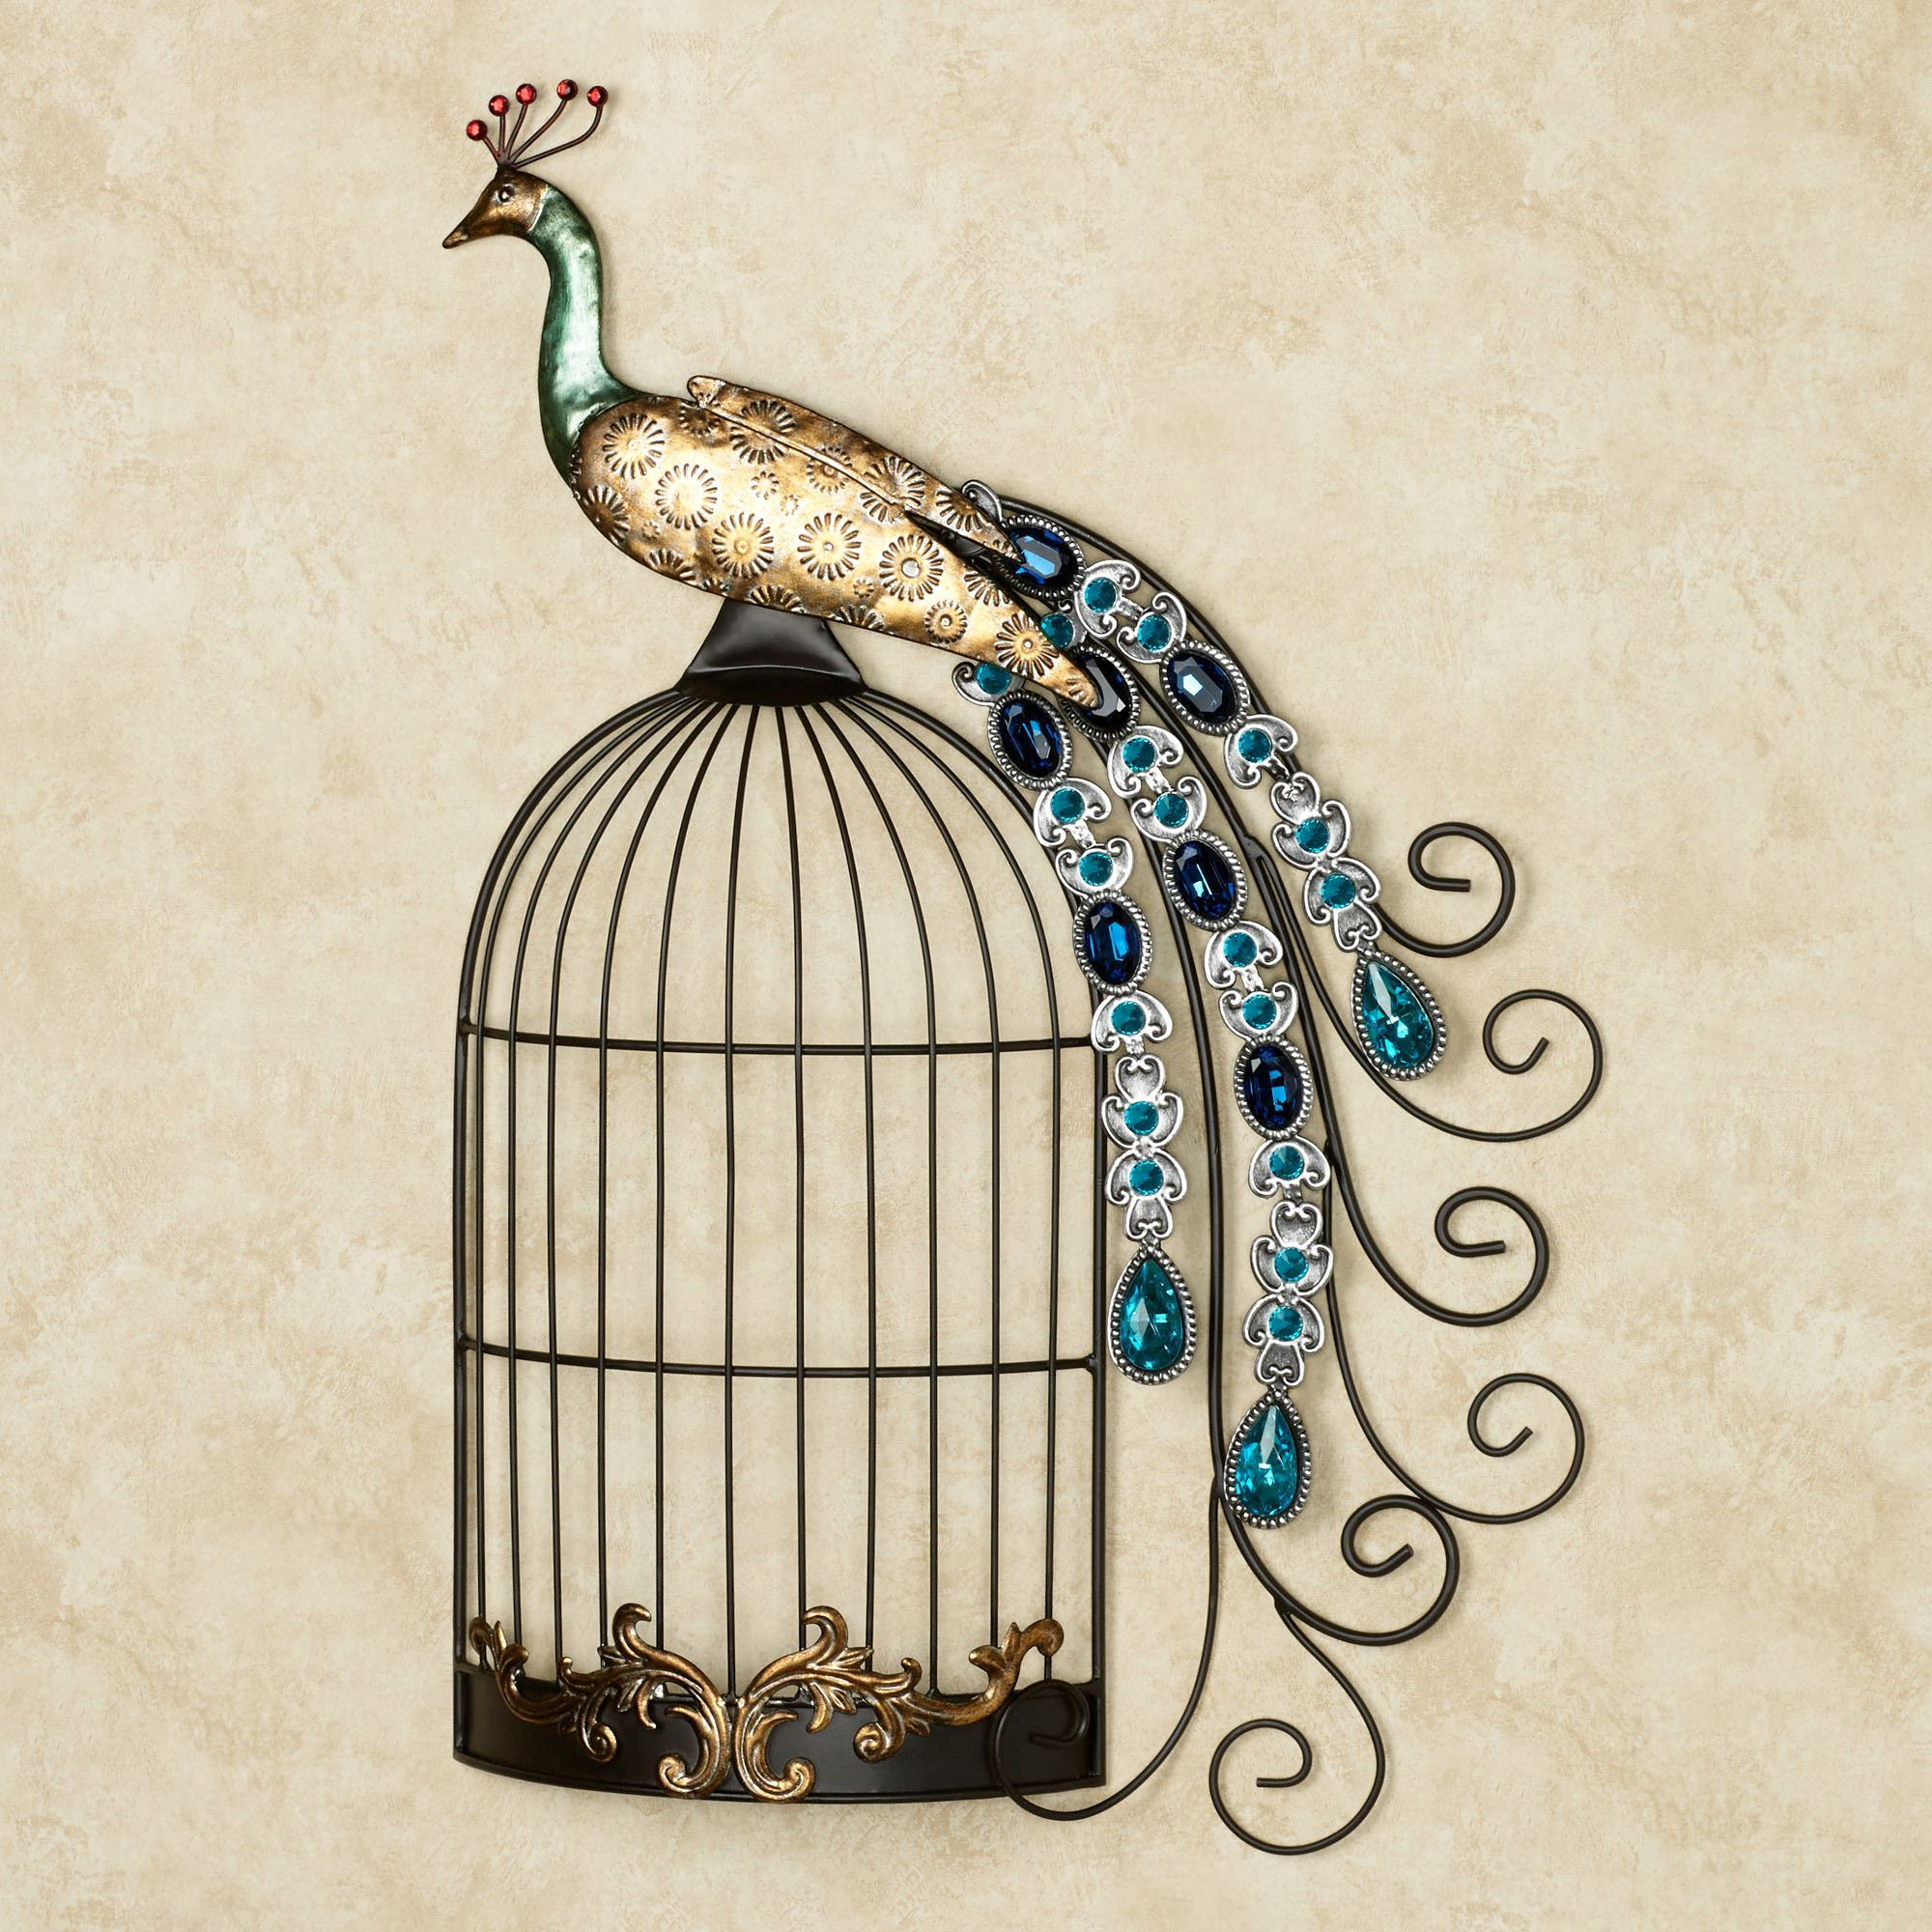 Peacock Wall Art Delectable Peacock Jewels On Cage Metal Wall Art Decorating Inspiration